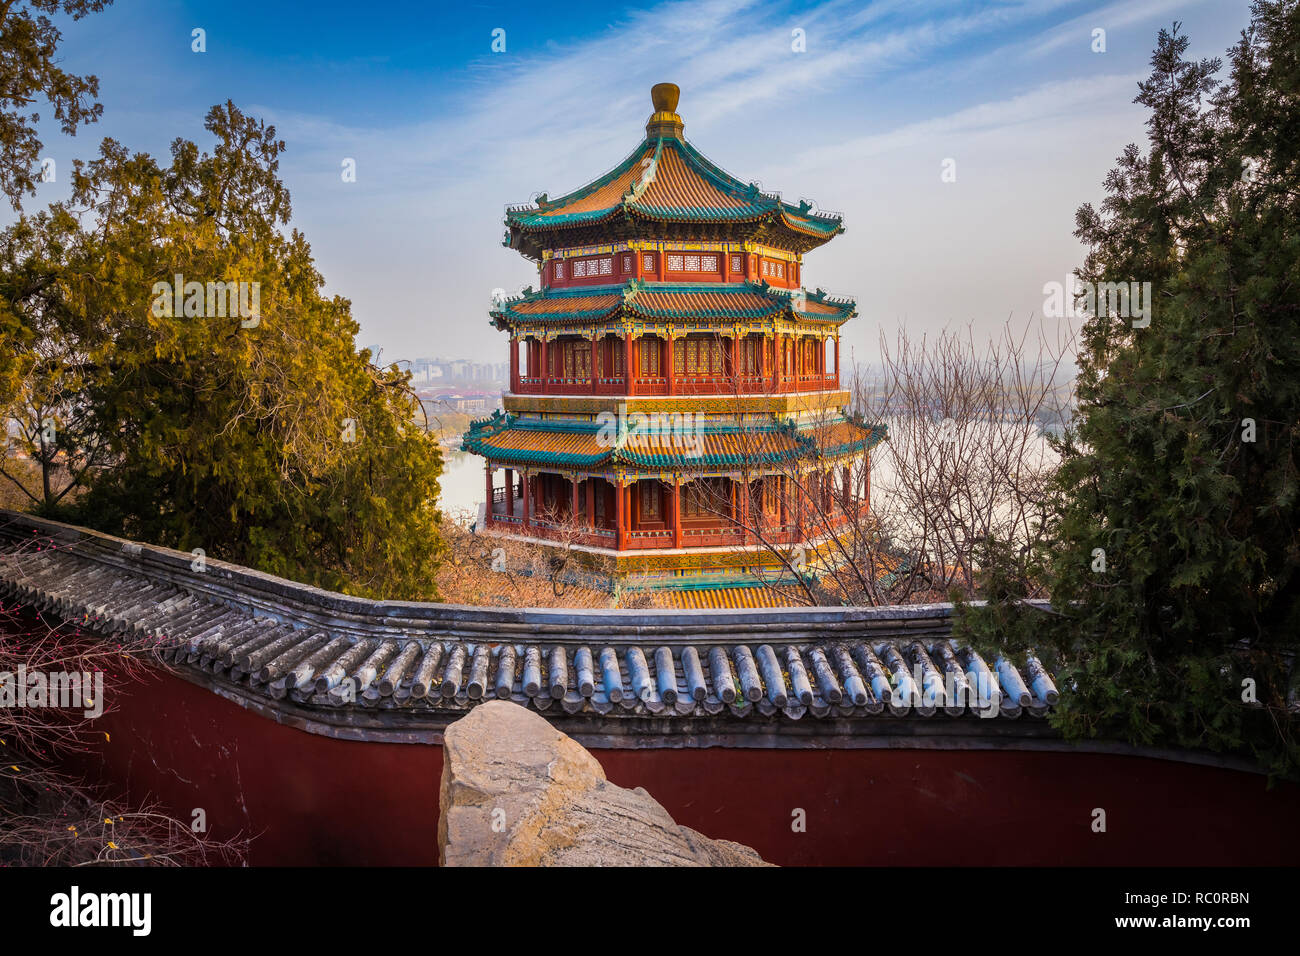 The Summer Palace (Chinese: 頤和園), is a vast ensemble of lakes, gardens and palaces in Beijing. It was an imperial garden in the Qing Dynasty. Mainly d Stock Photo